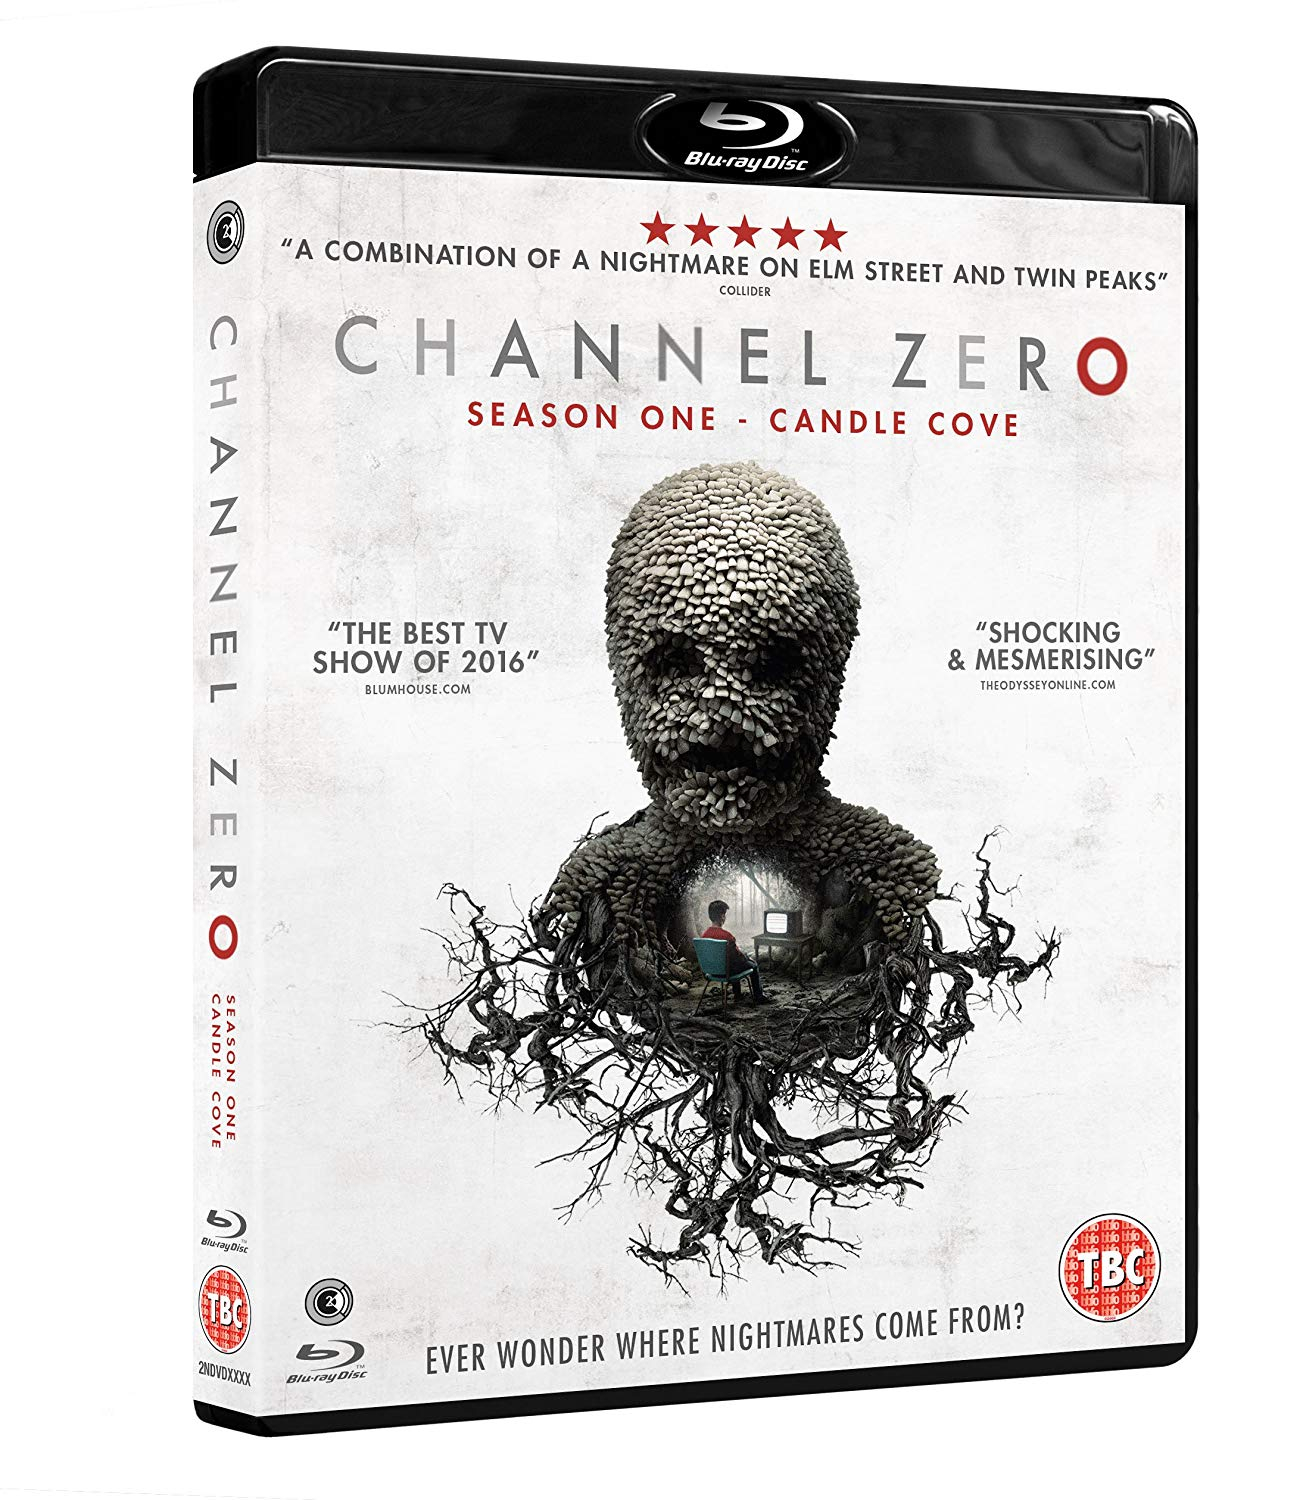 Buy Channel Zero Season One - Candle Cove (Blu-ray)